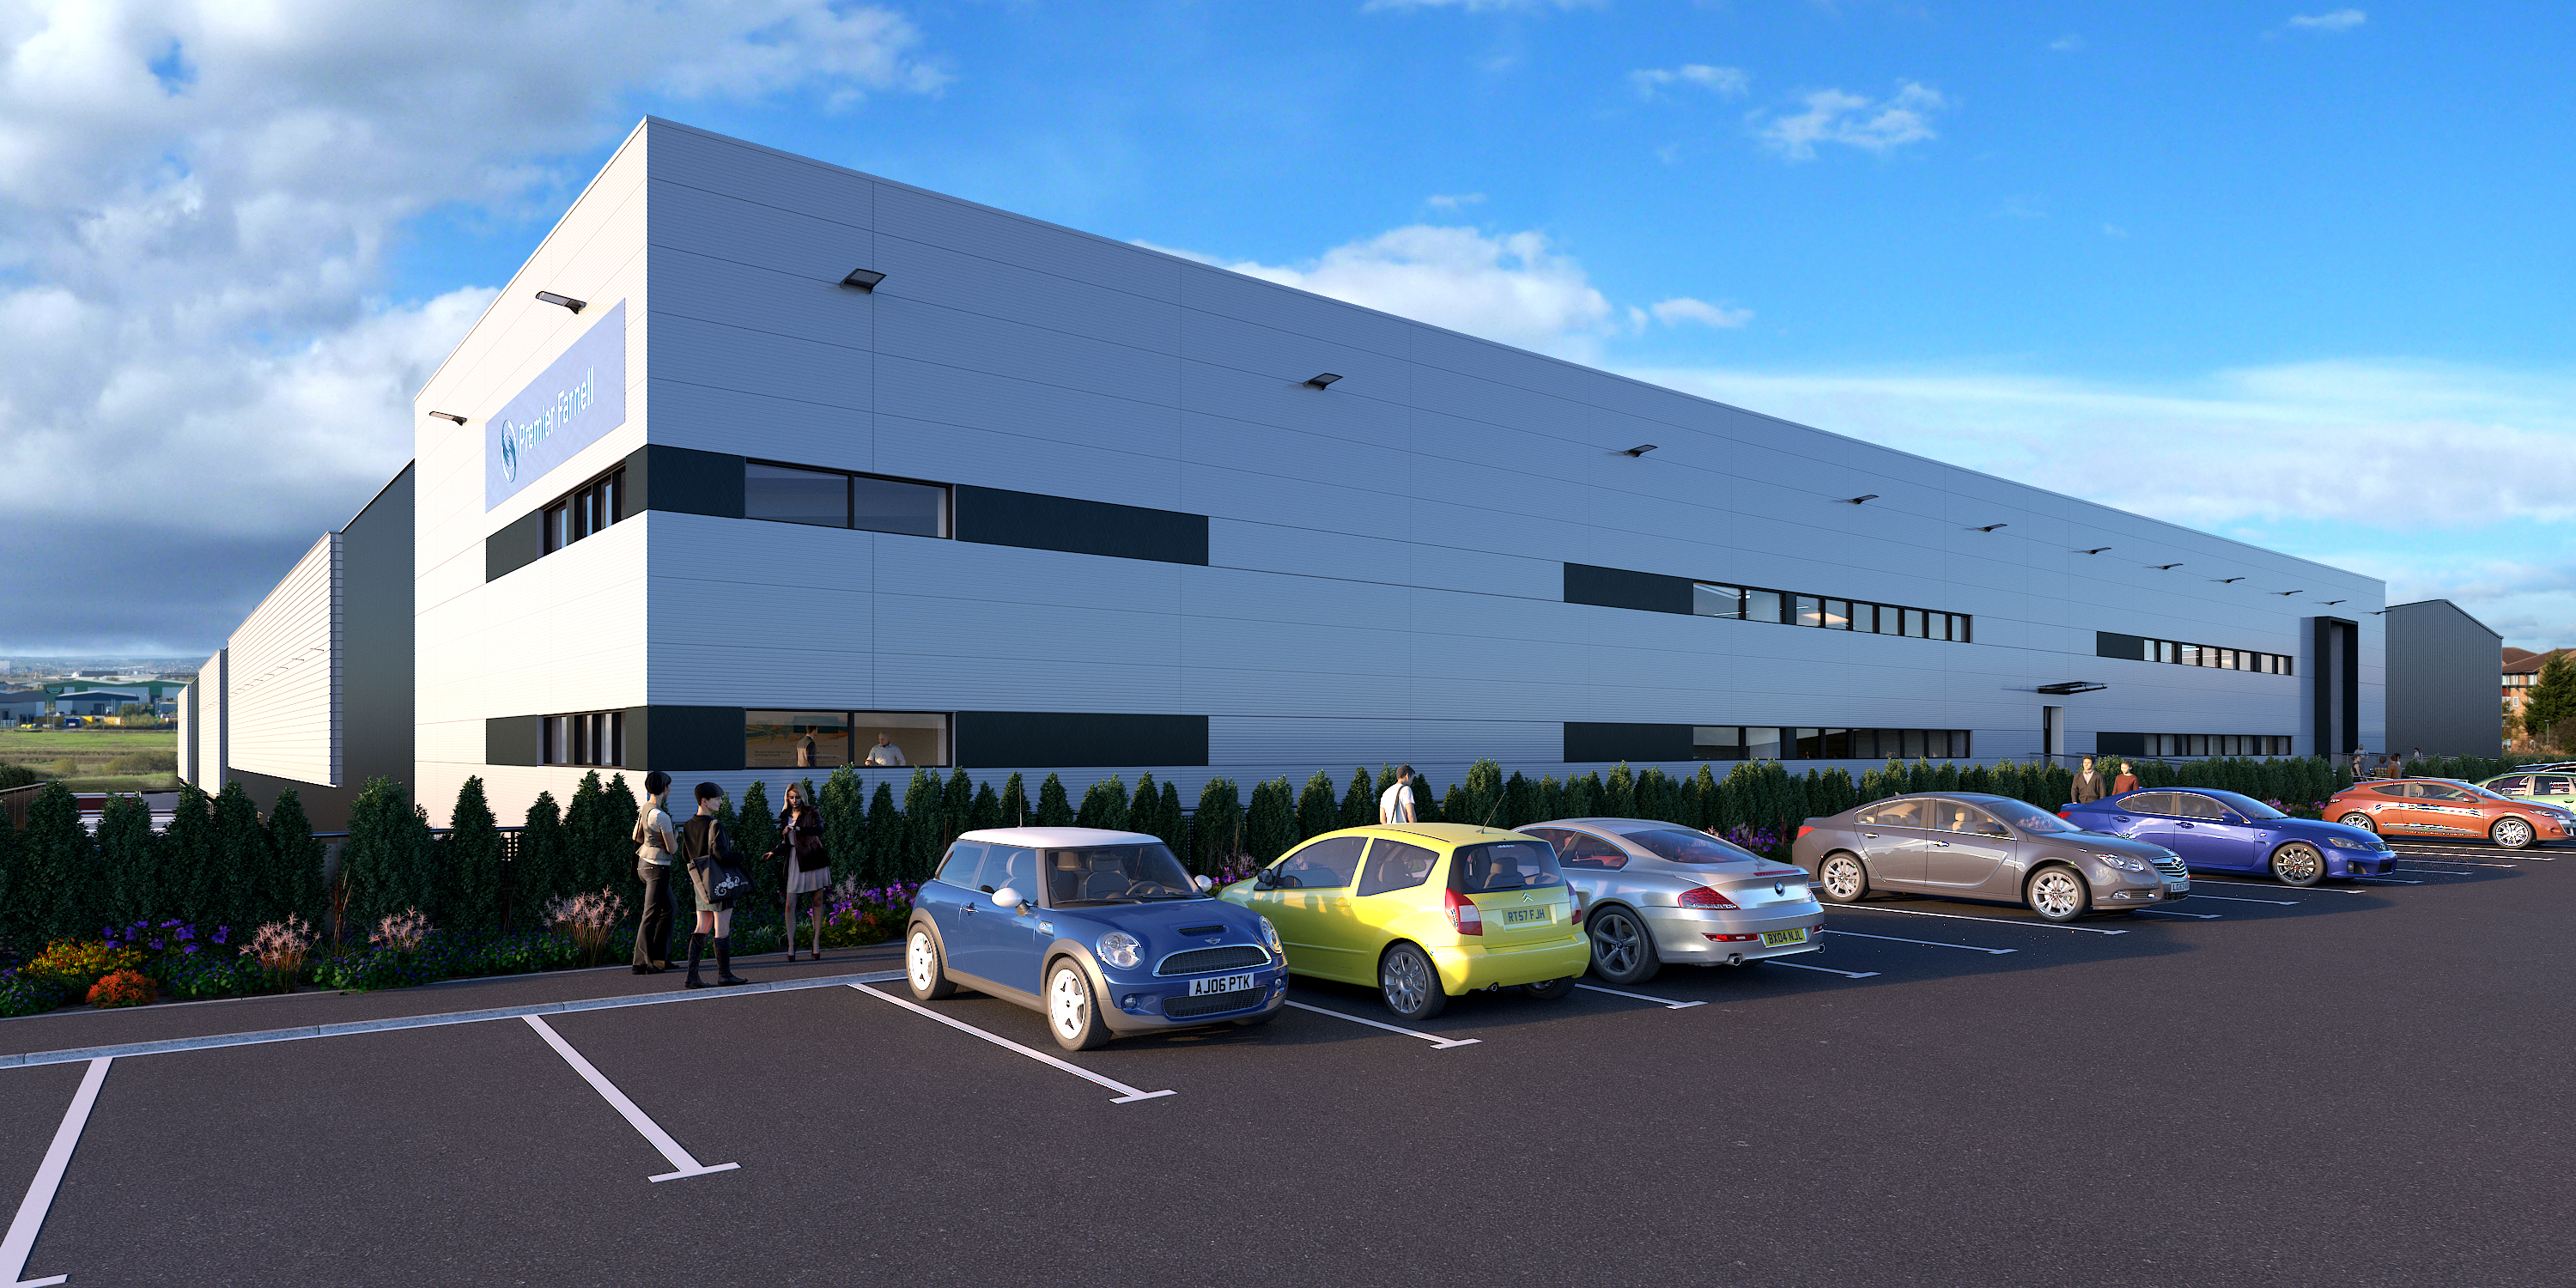 , Premier Farnell Signs Contract for State-of-the-art Order Fulfilment Solution for New Leeds Distribution Centre